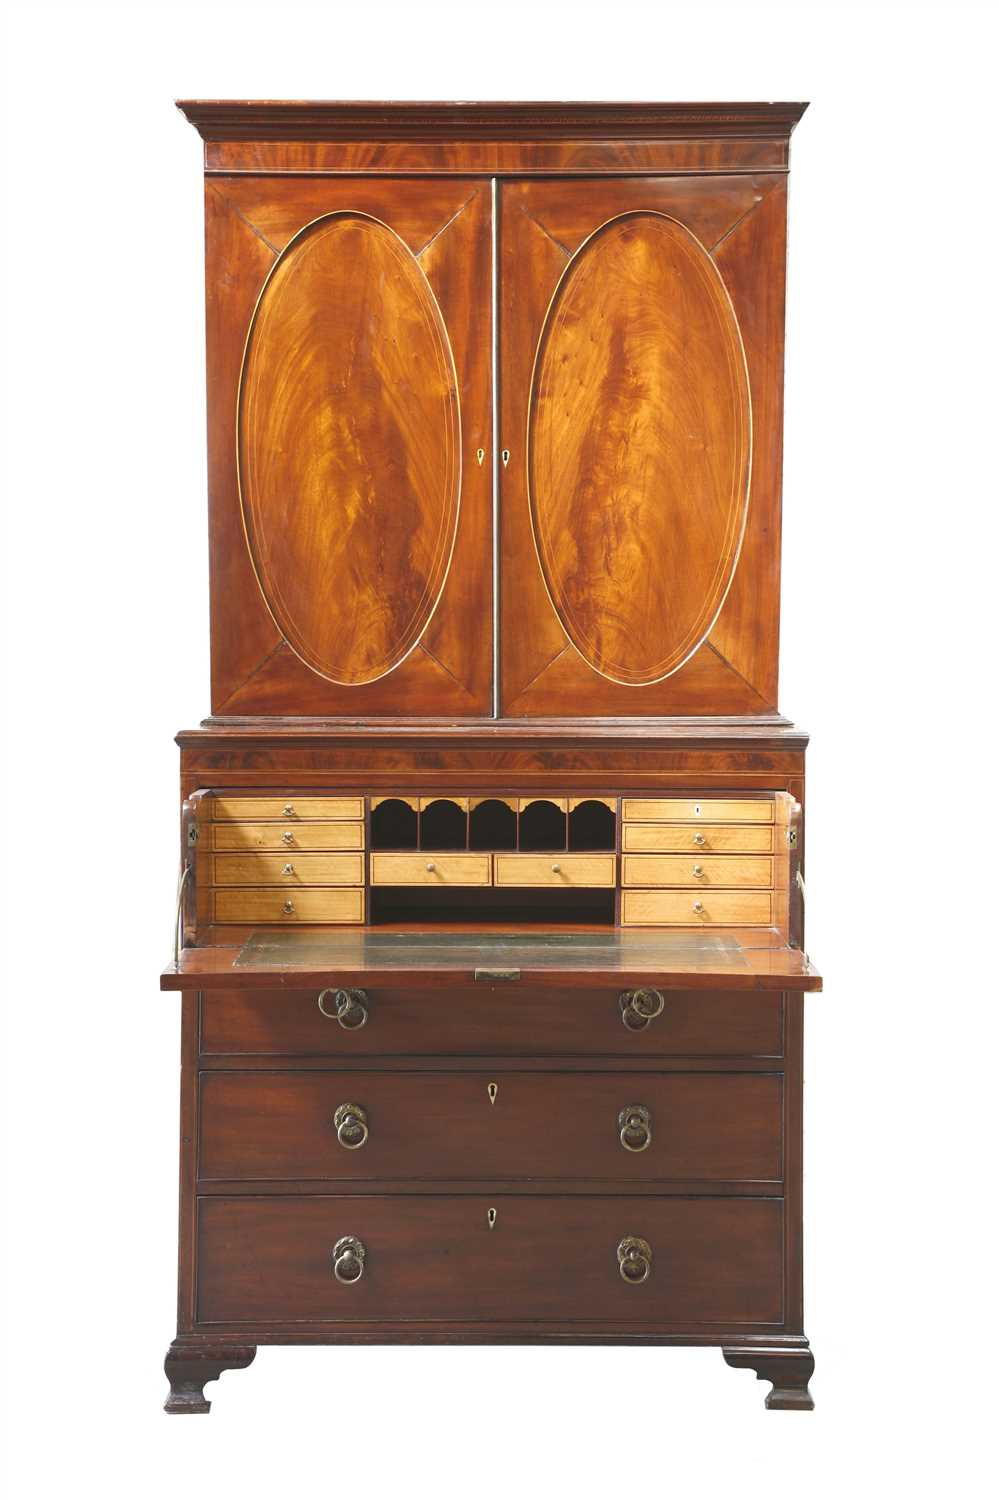 Lot 12-A George III strung mahogany secretaire bookcase